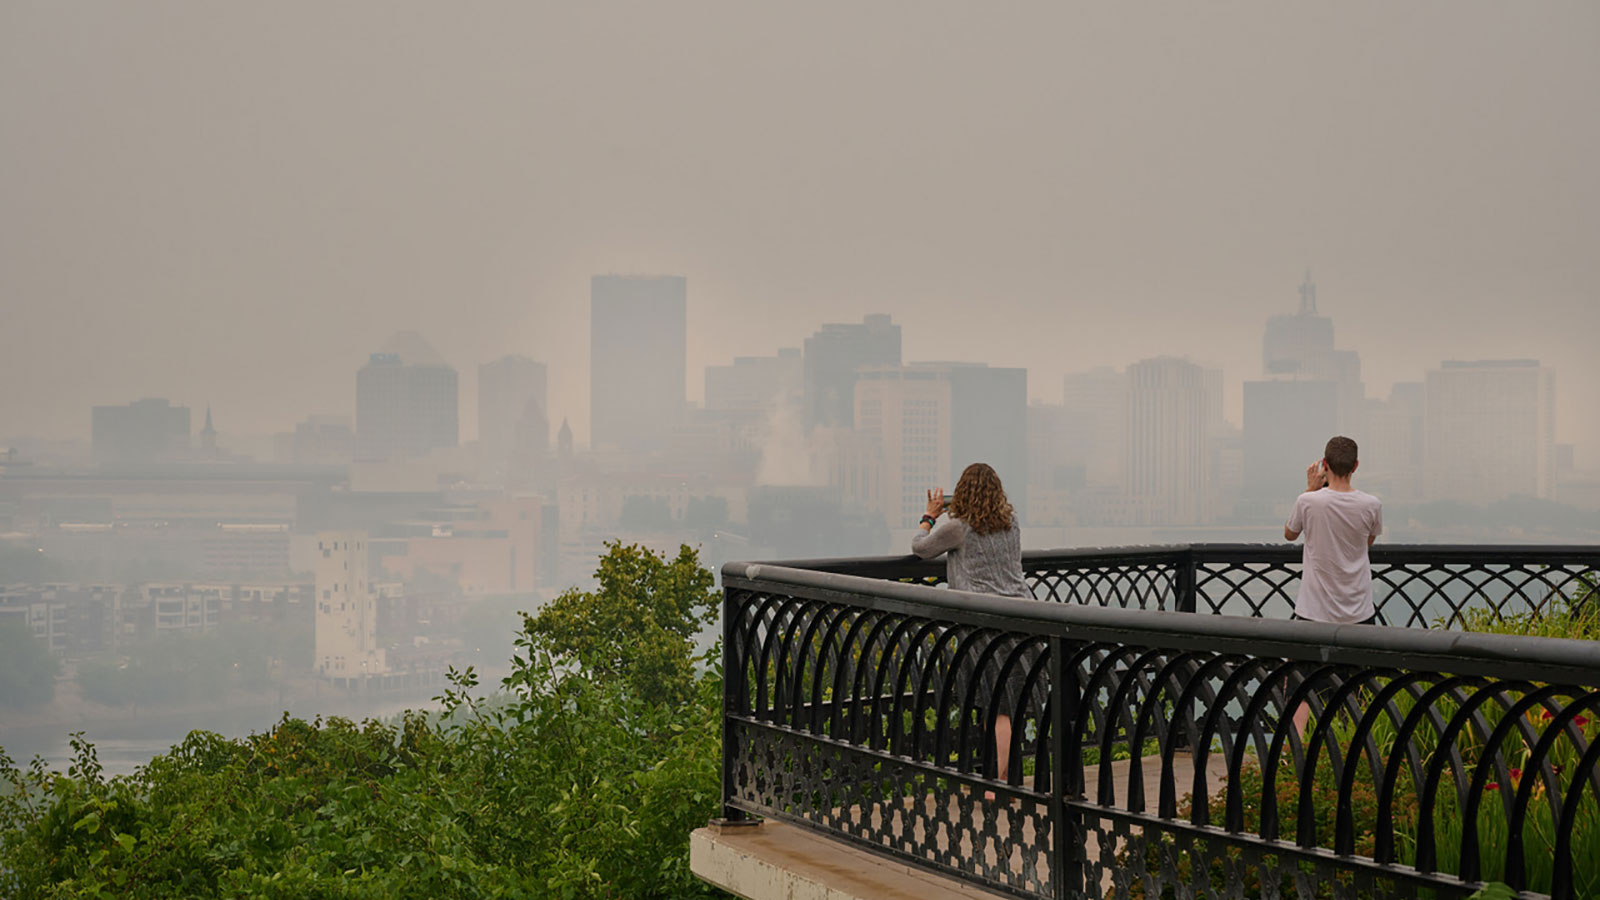 Two people in Saint Paul, Minnesota, taking photos of the city shrouded in smoke from wildfires in Canada